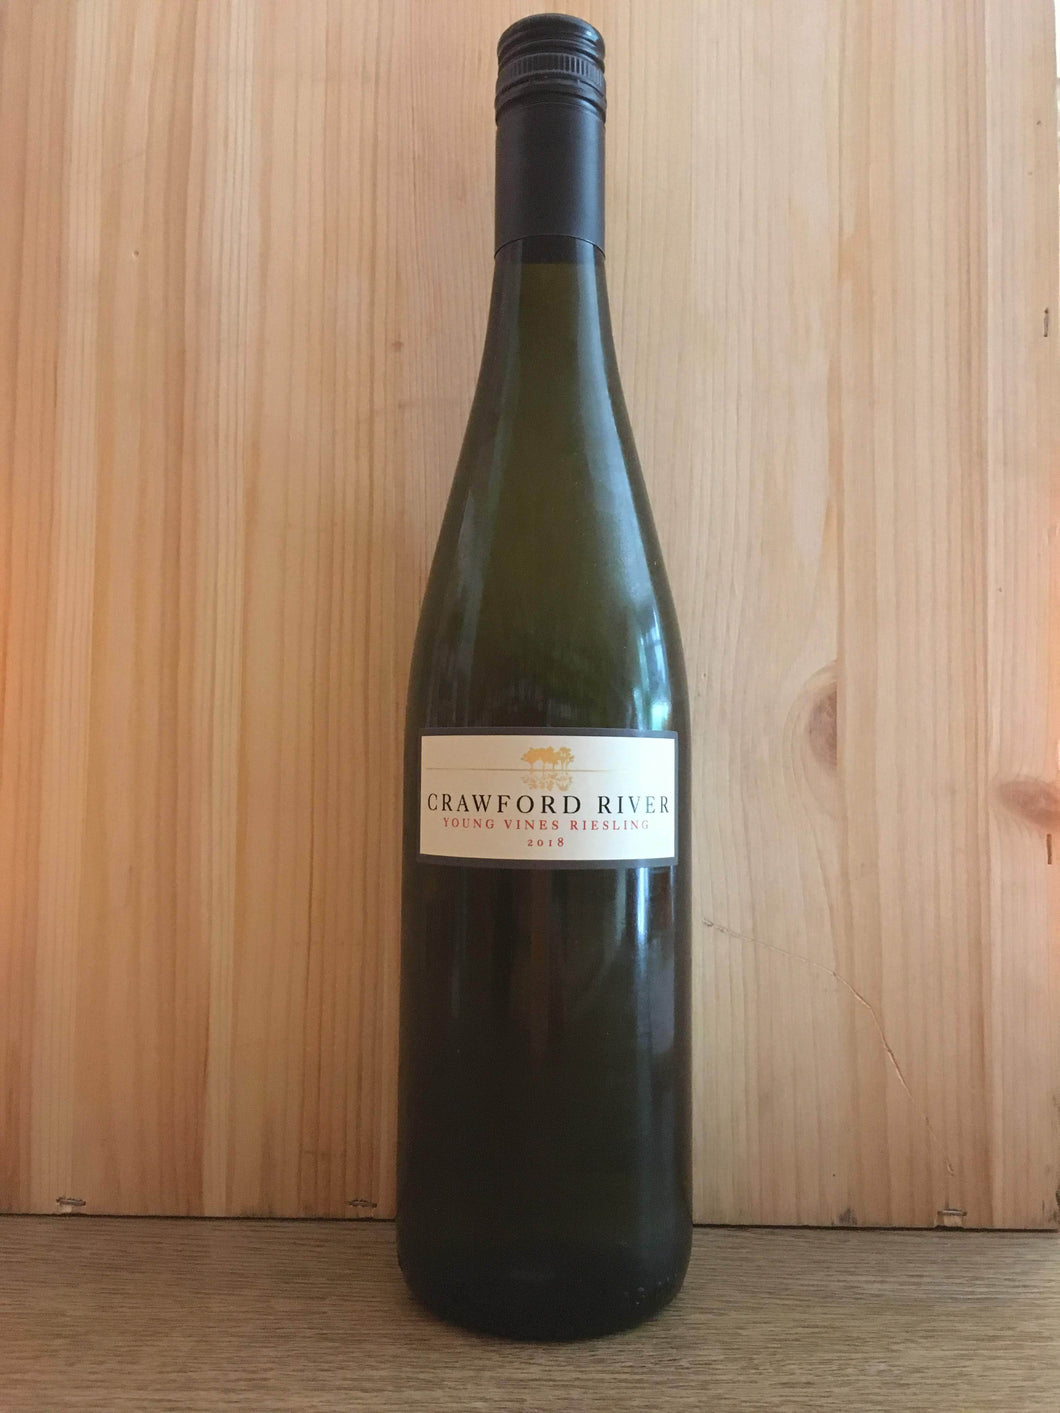 Crawford River 'YOUNG VINES' Riesling Henty 2018